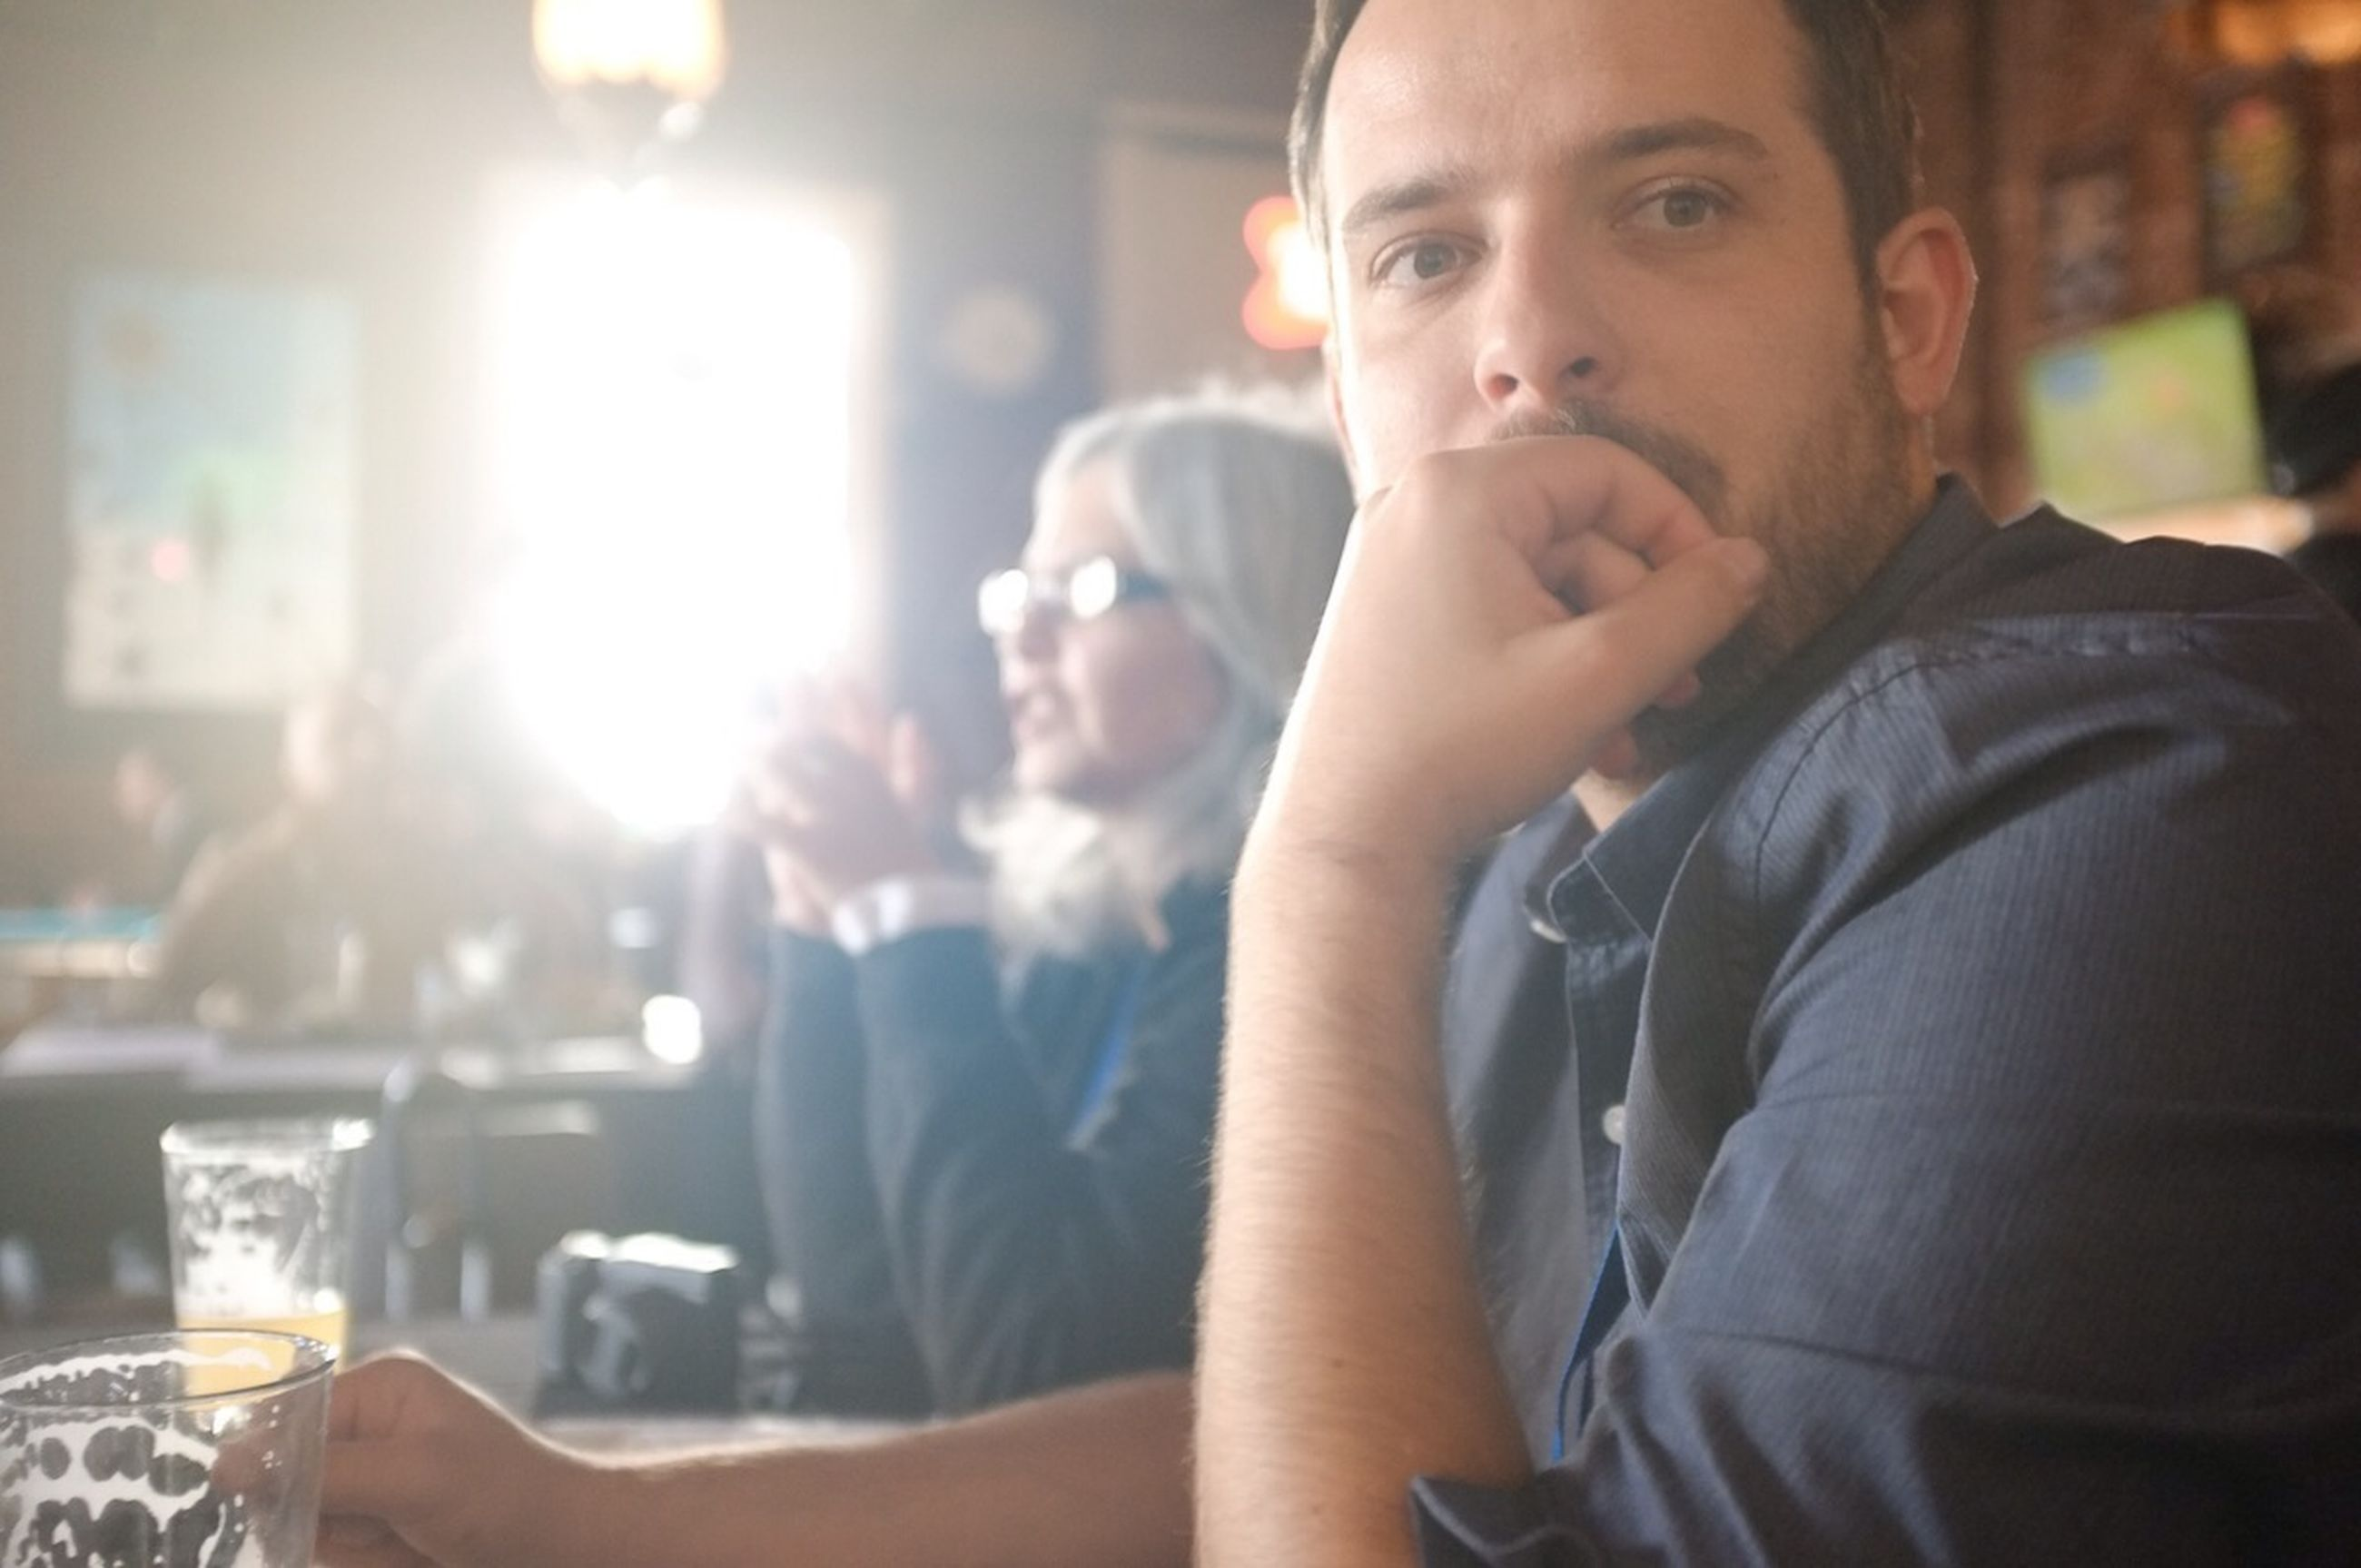 lifestyles, person, leisure activity, young adult, focus on foreground, casual clothing, front view, looking at camera, headshot, portrait, young men, waist up, holding, smiling, sitting, three quarter length